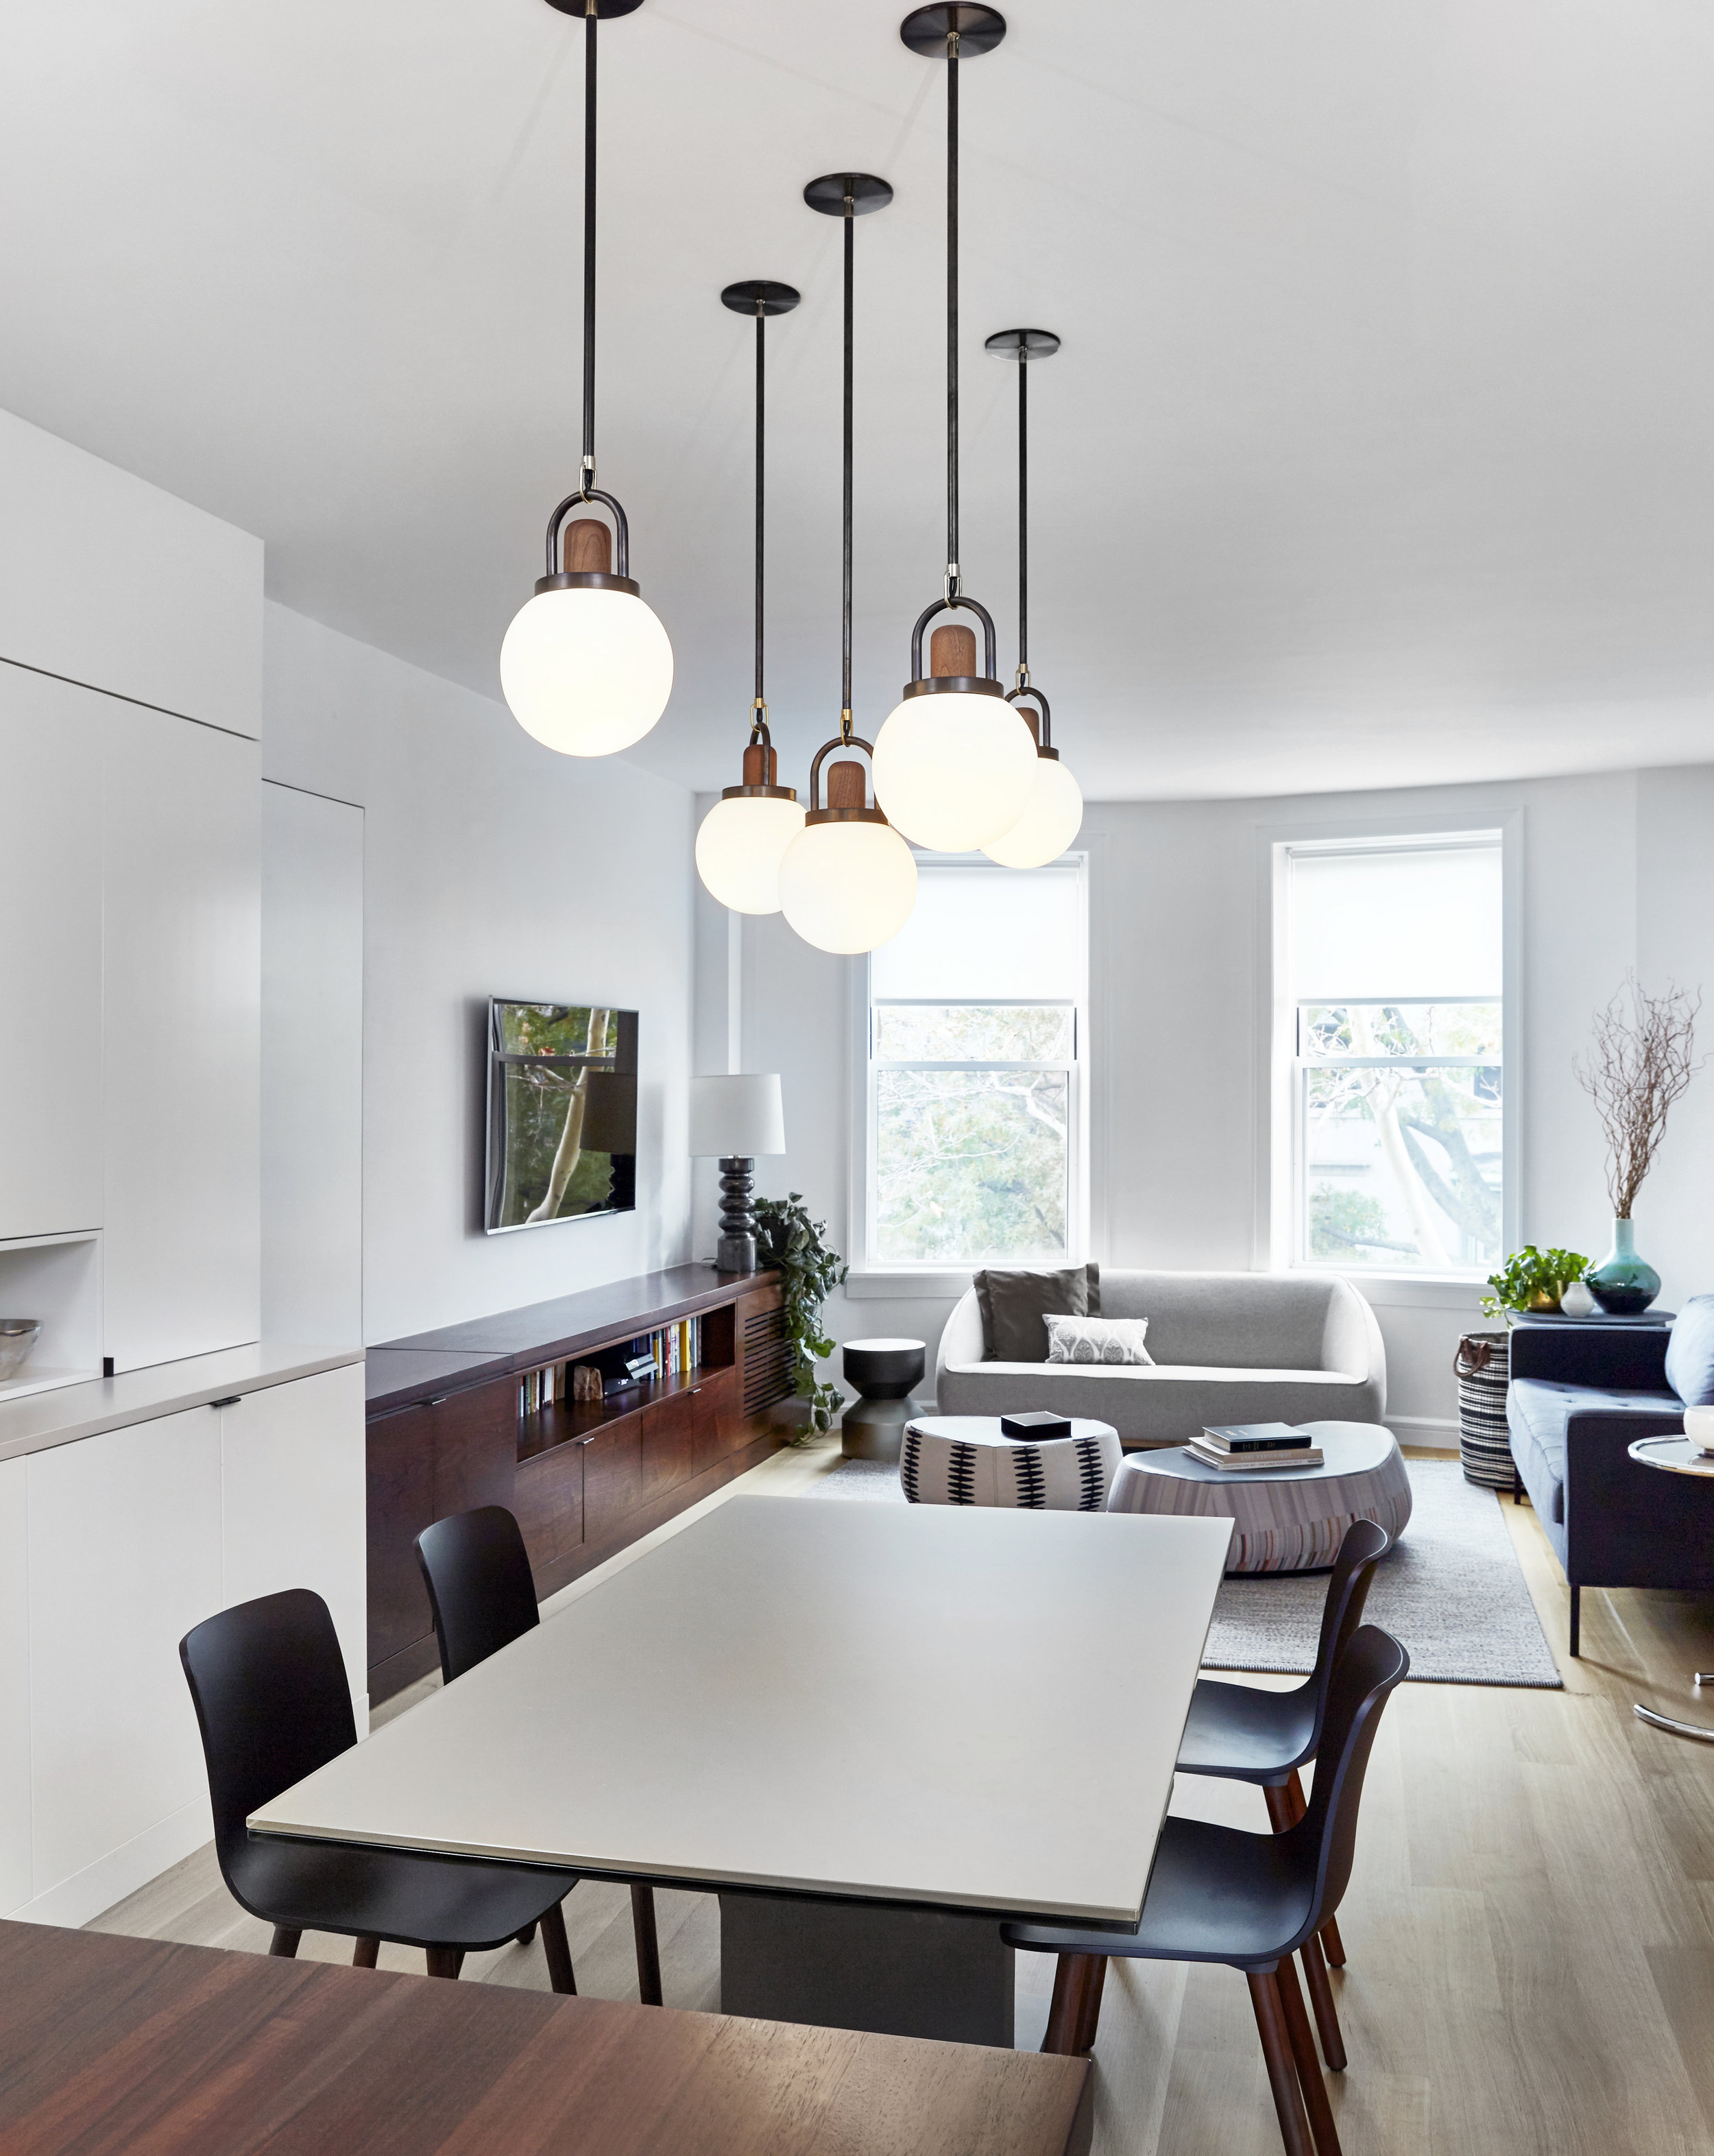 Allied-Maker-Pendant-Light-Modern-Dining-Area-JMorris-Design-Brooklyn.jpg